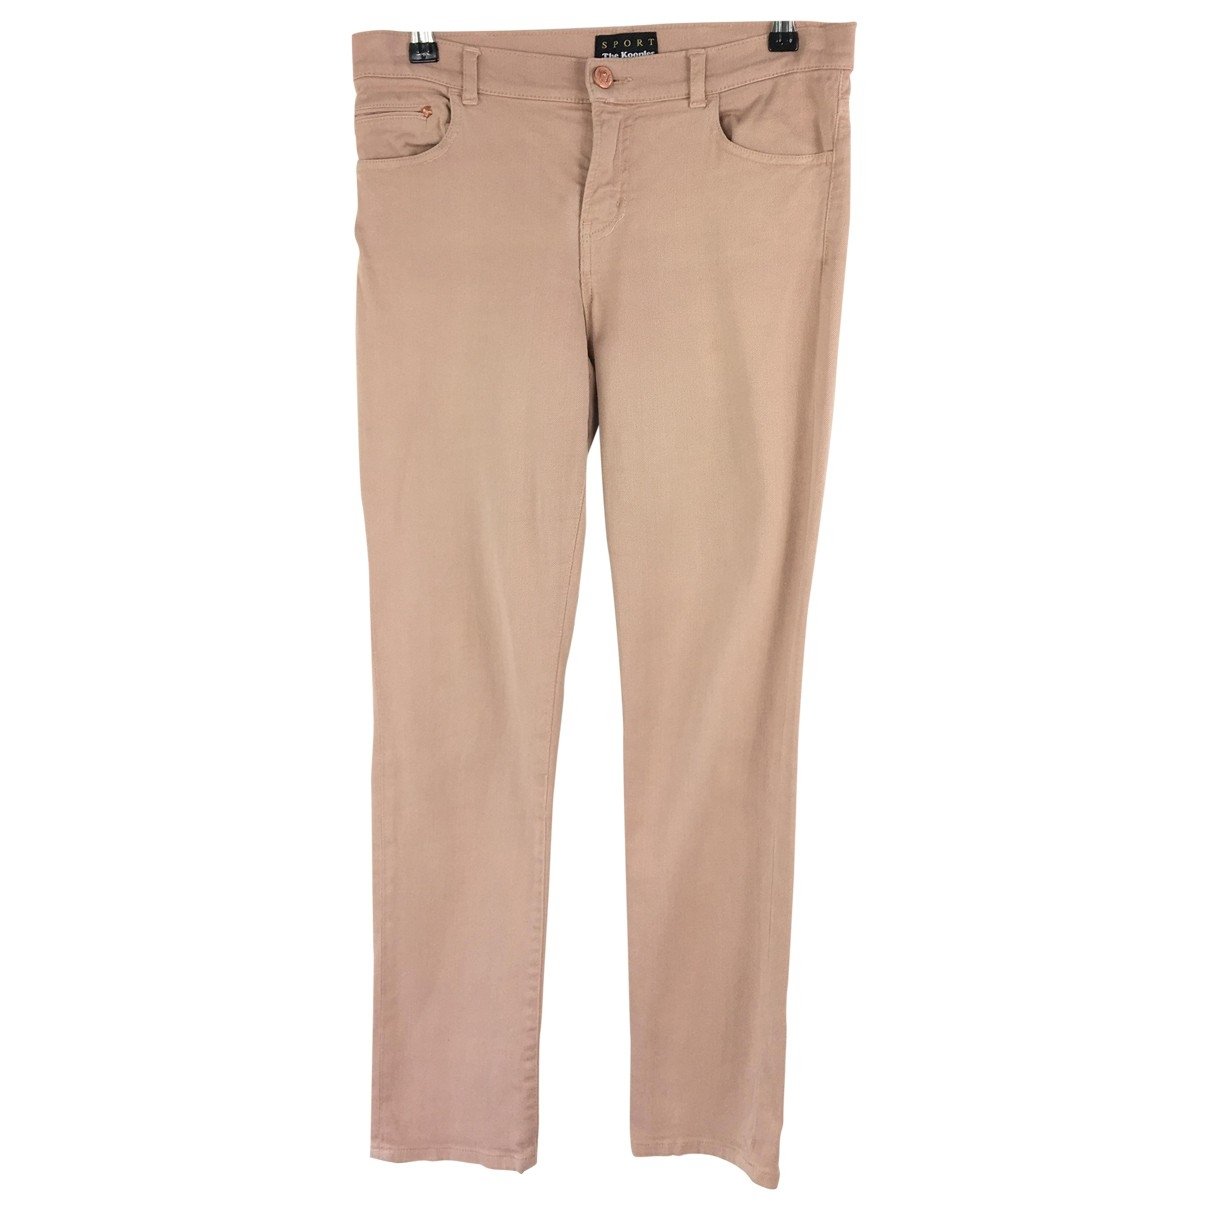 The Kooples \N Pink Cotton - elasthane Jeans for Women 28 US